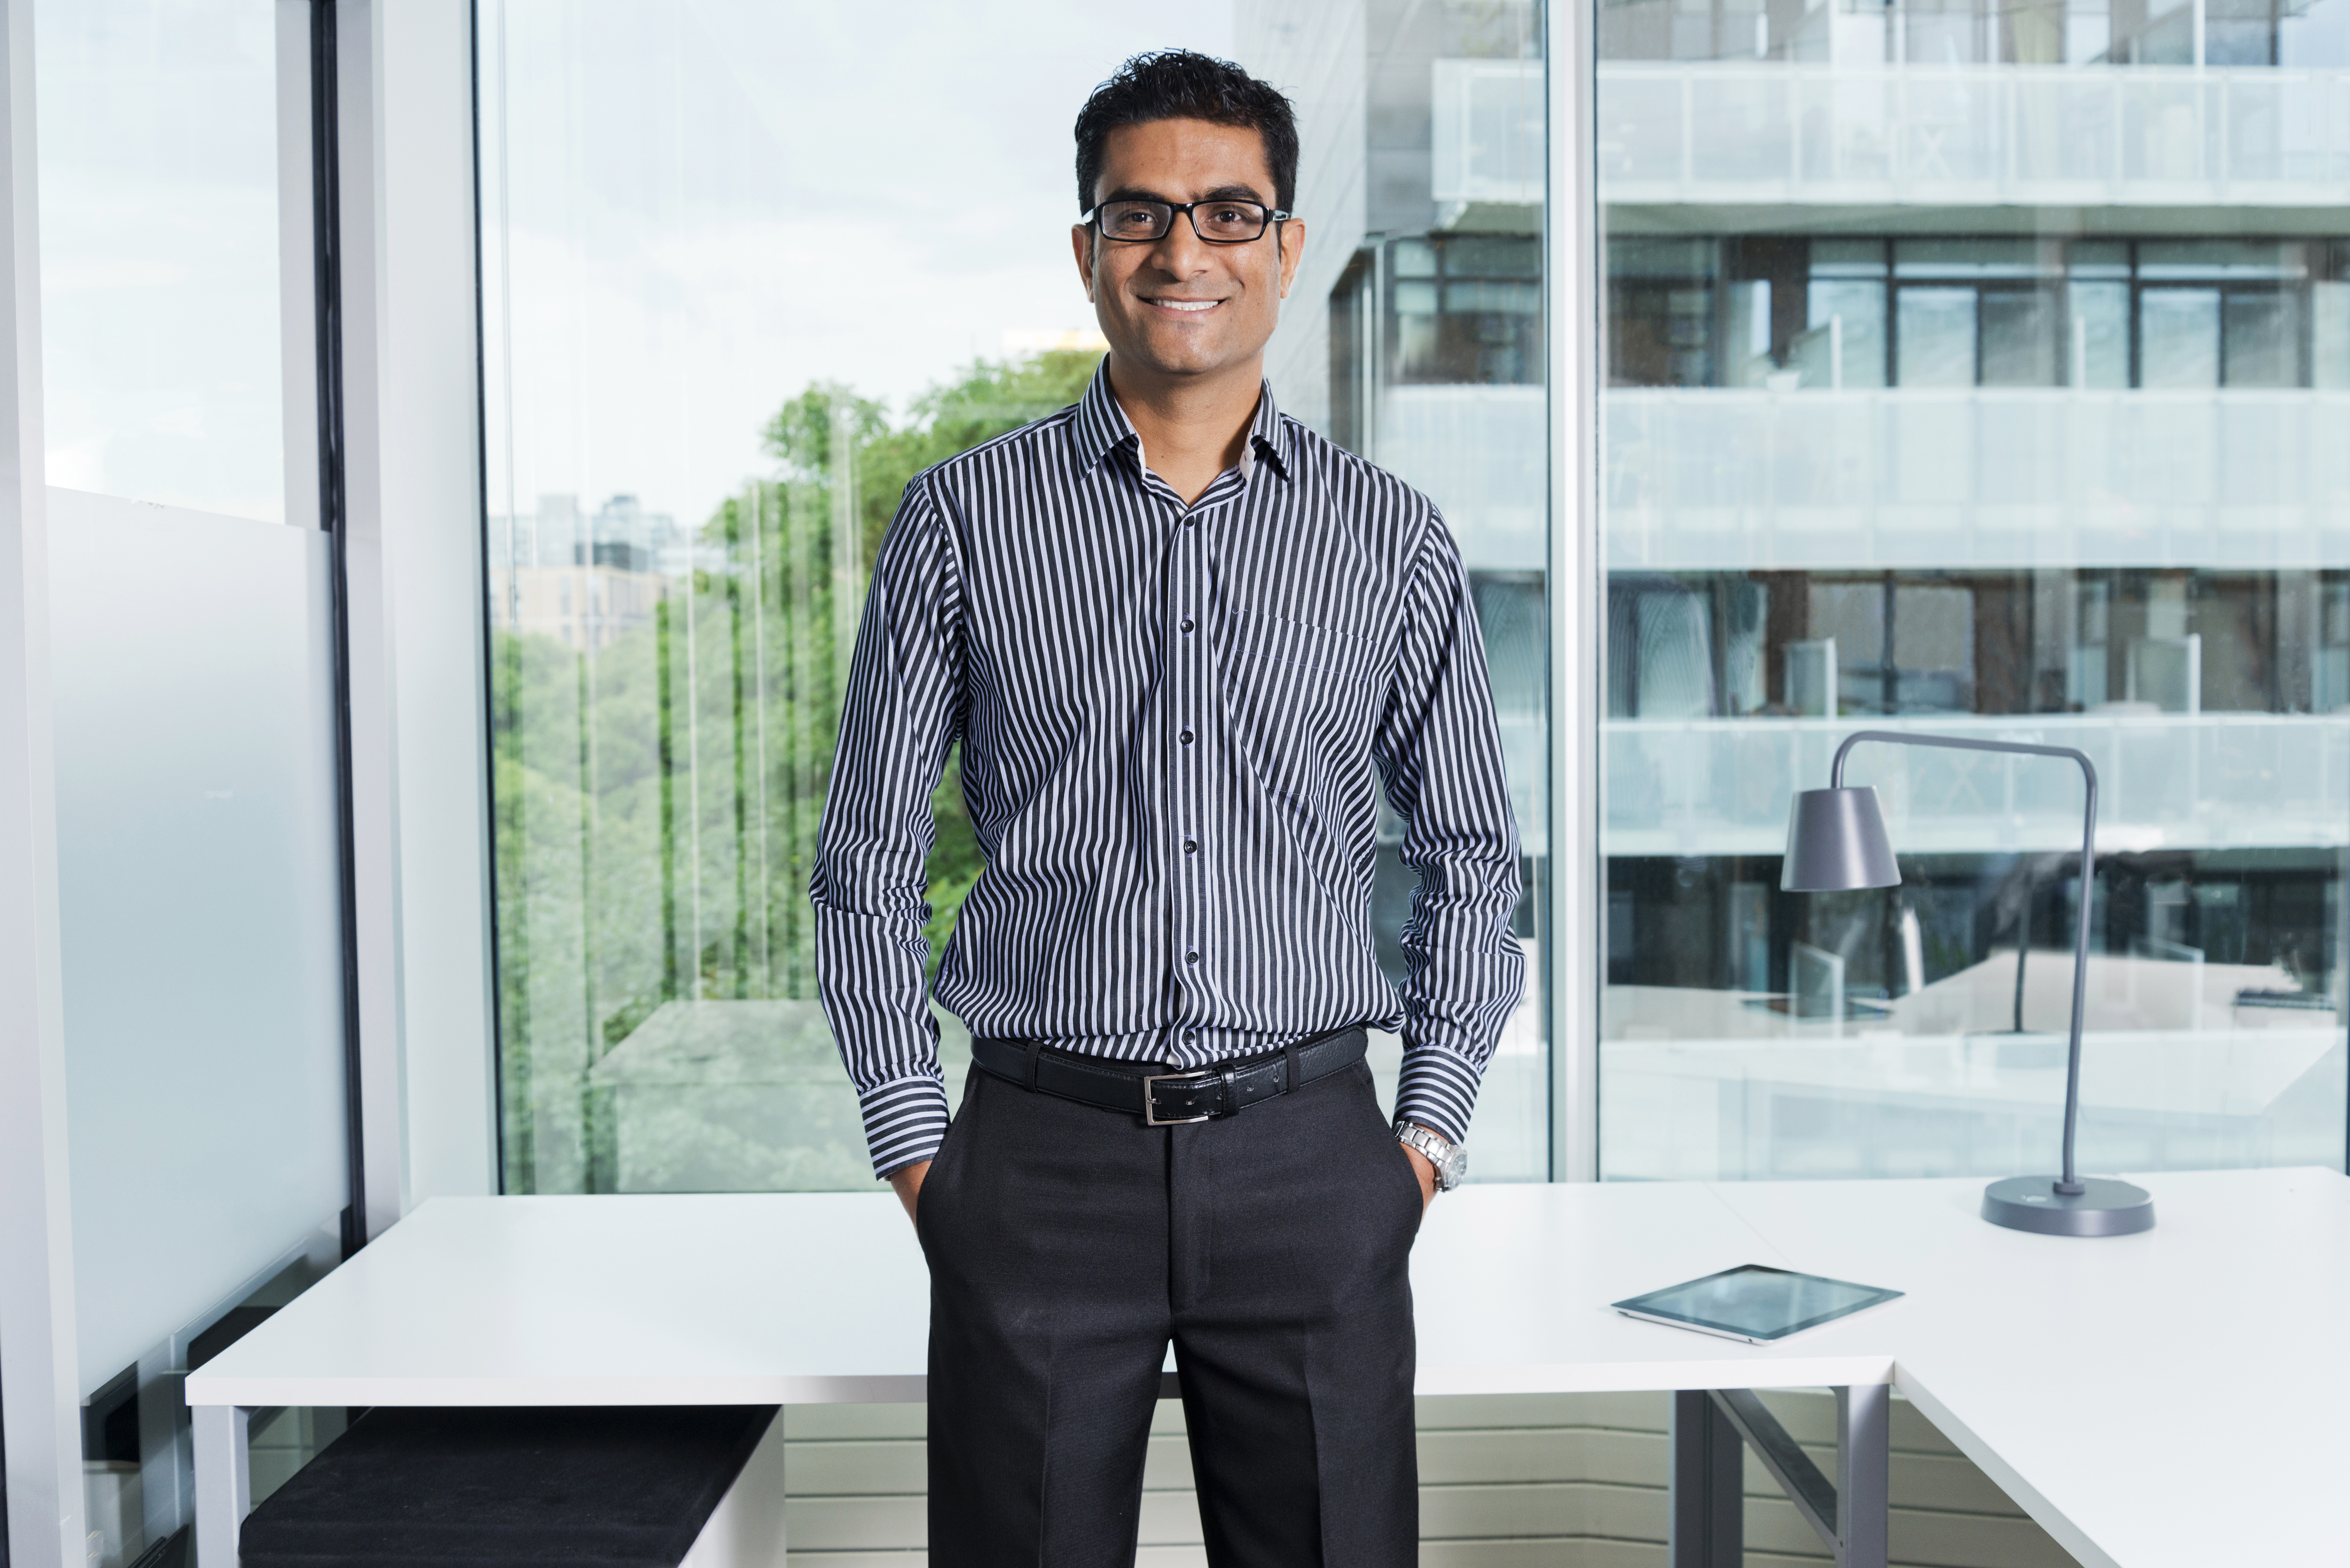 Male executive standing in office with hands in pockets